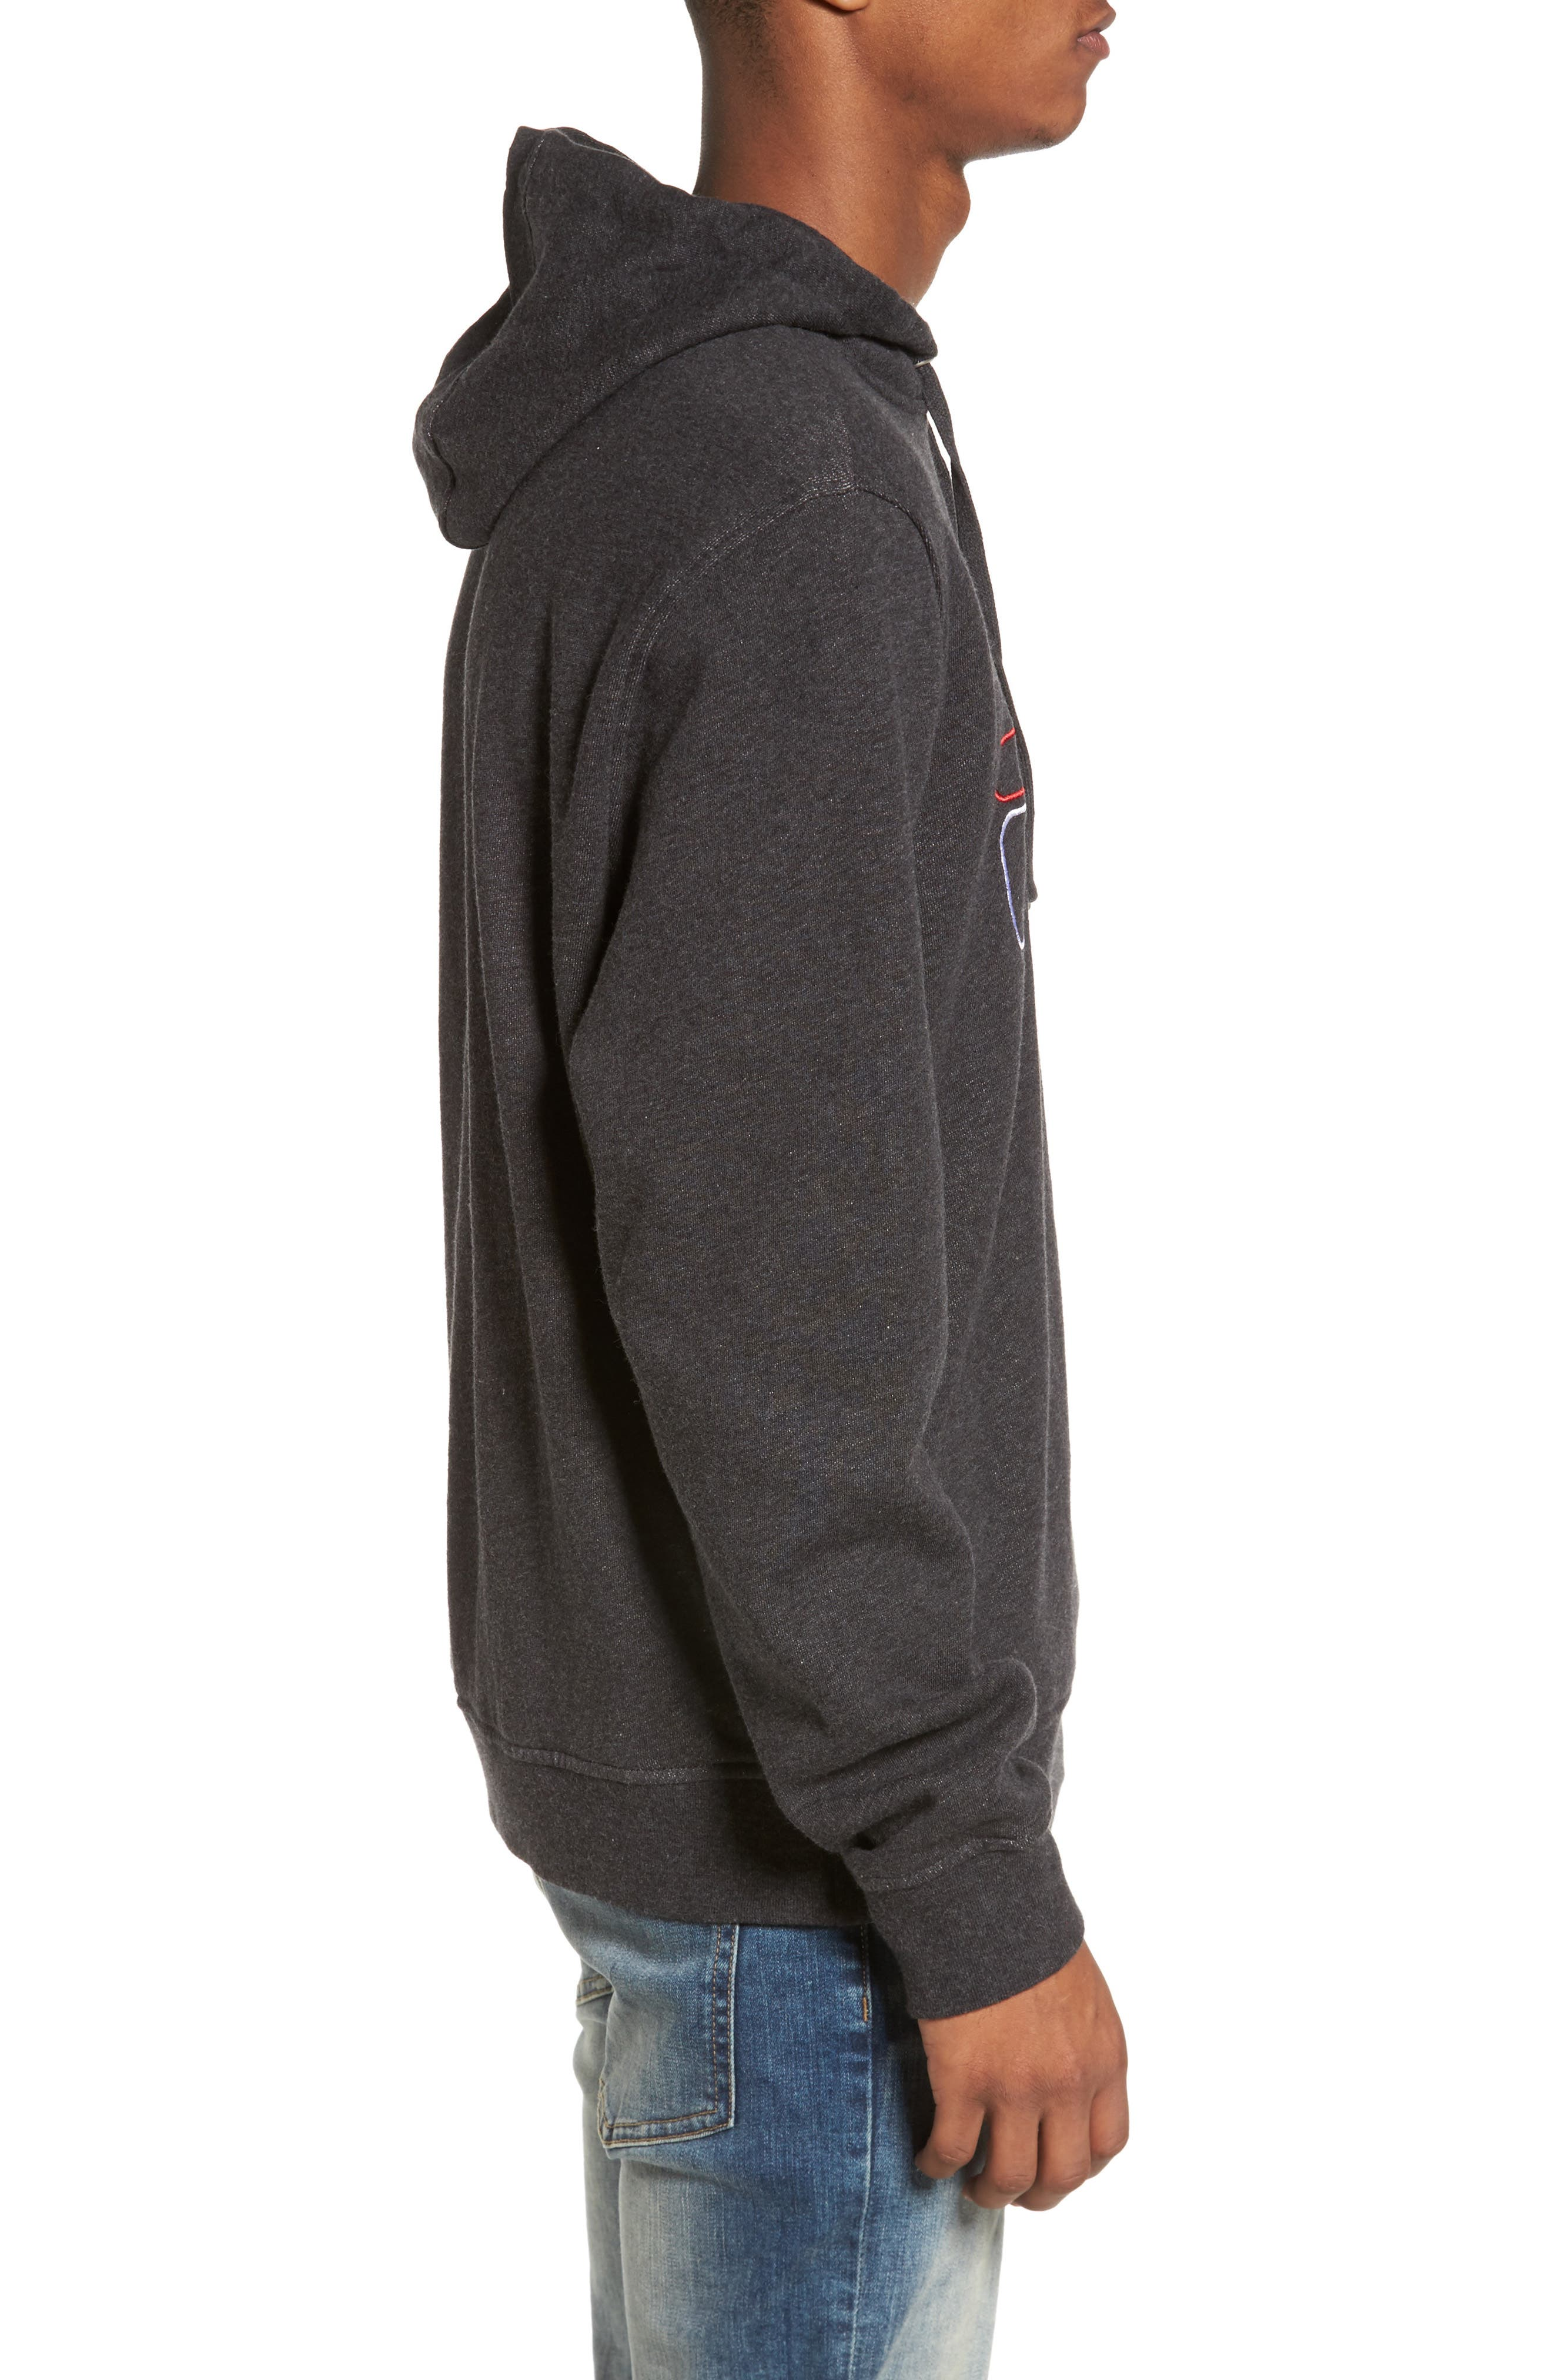 Brooklyn Hoodie,                             Alternate thumbnail 3, color,                             Black Heather/ White/ Red